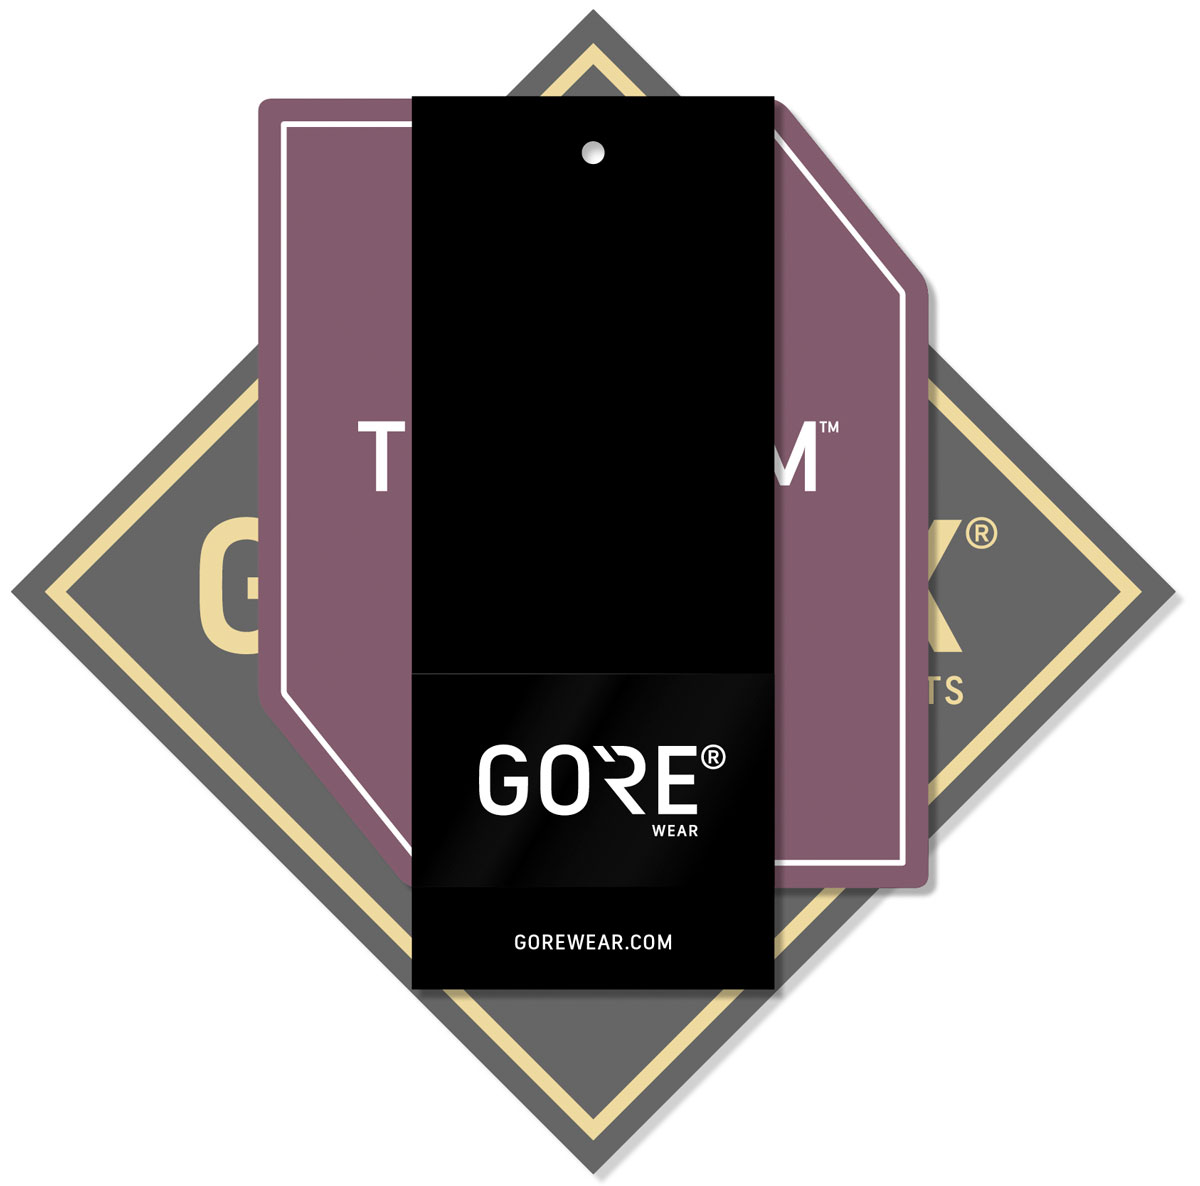 190617_mg-website_Gore-Wear6_web